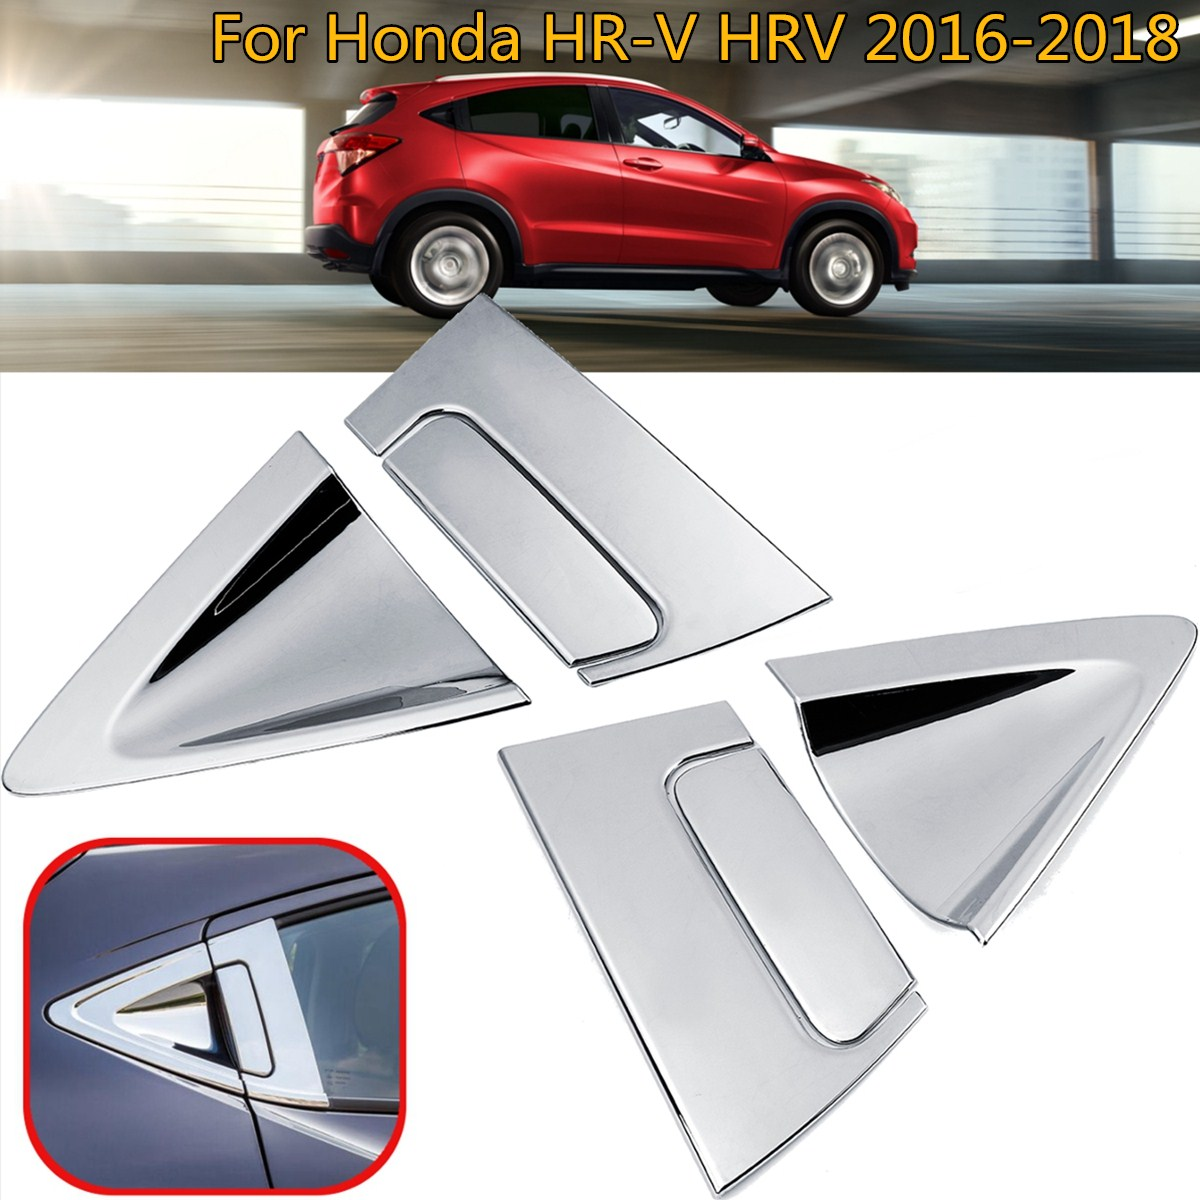 For <font><b>Honda</b></font> for HR-V <font><b>HRV</b></font> 2016-2018 Car Accessories 6pcs ABS Chrome/Carbon fiber Side Rear Door Handle Cover Bowl Cover Insert <font><b>Trim</b></font> image